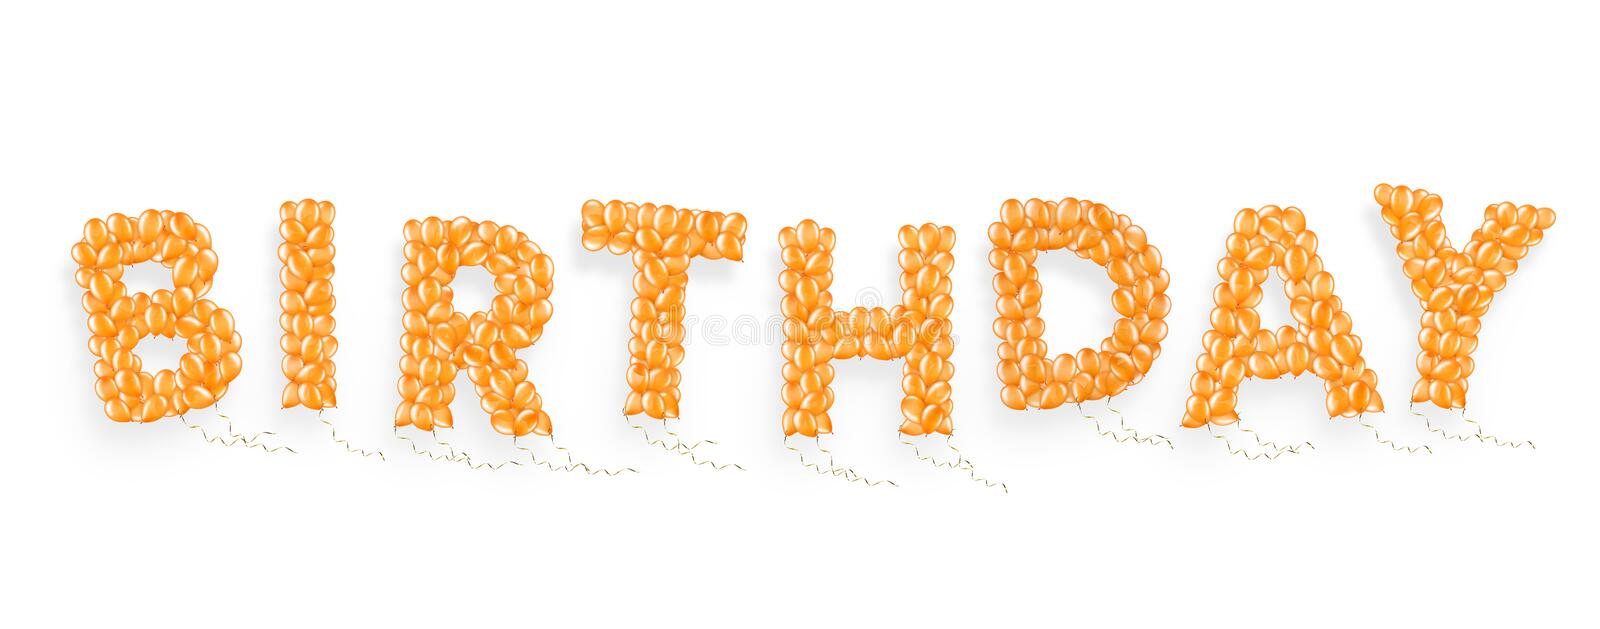 Word Birthday made of flying helium balloon with ribbons, element of decorations. For parties, isolated on white background with clipping path. 3D illustration stock illustration